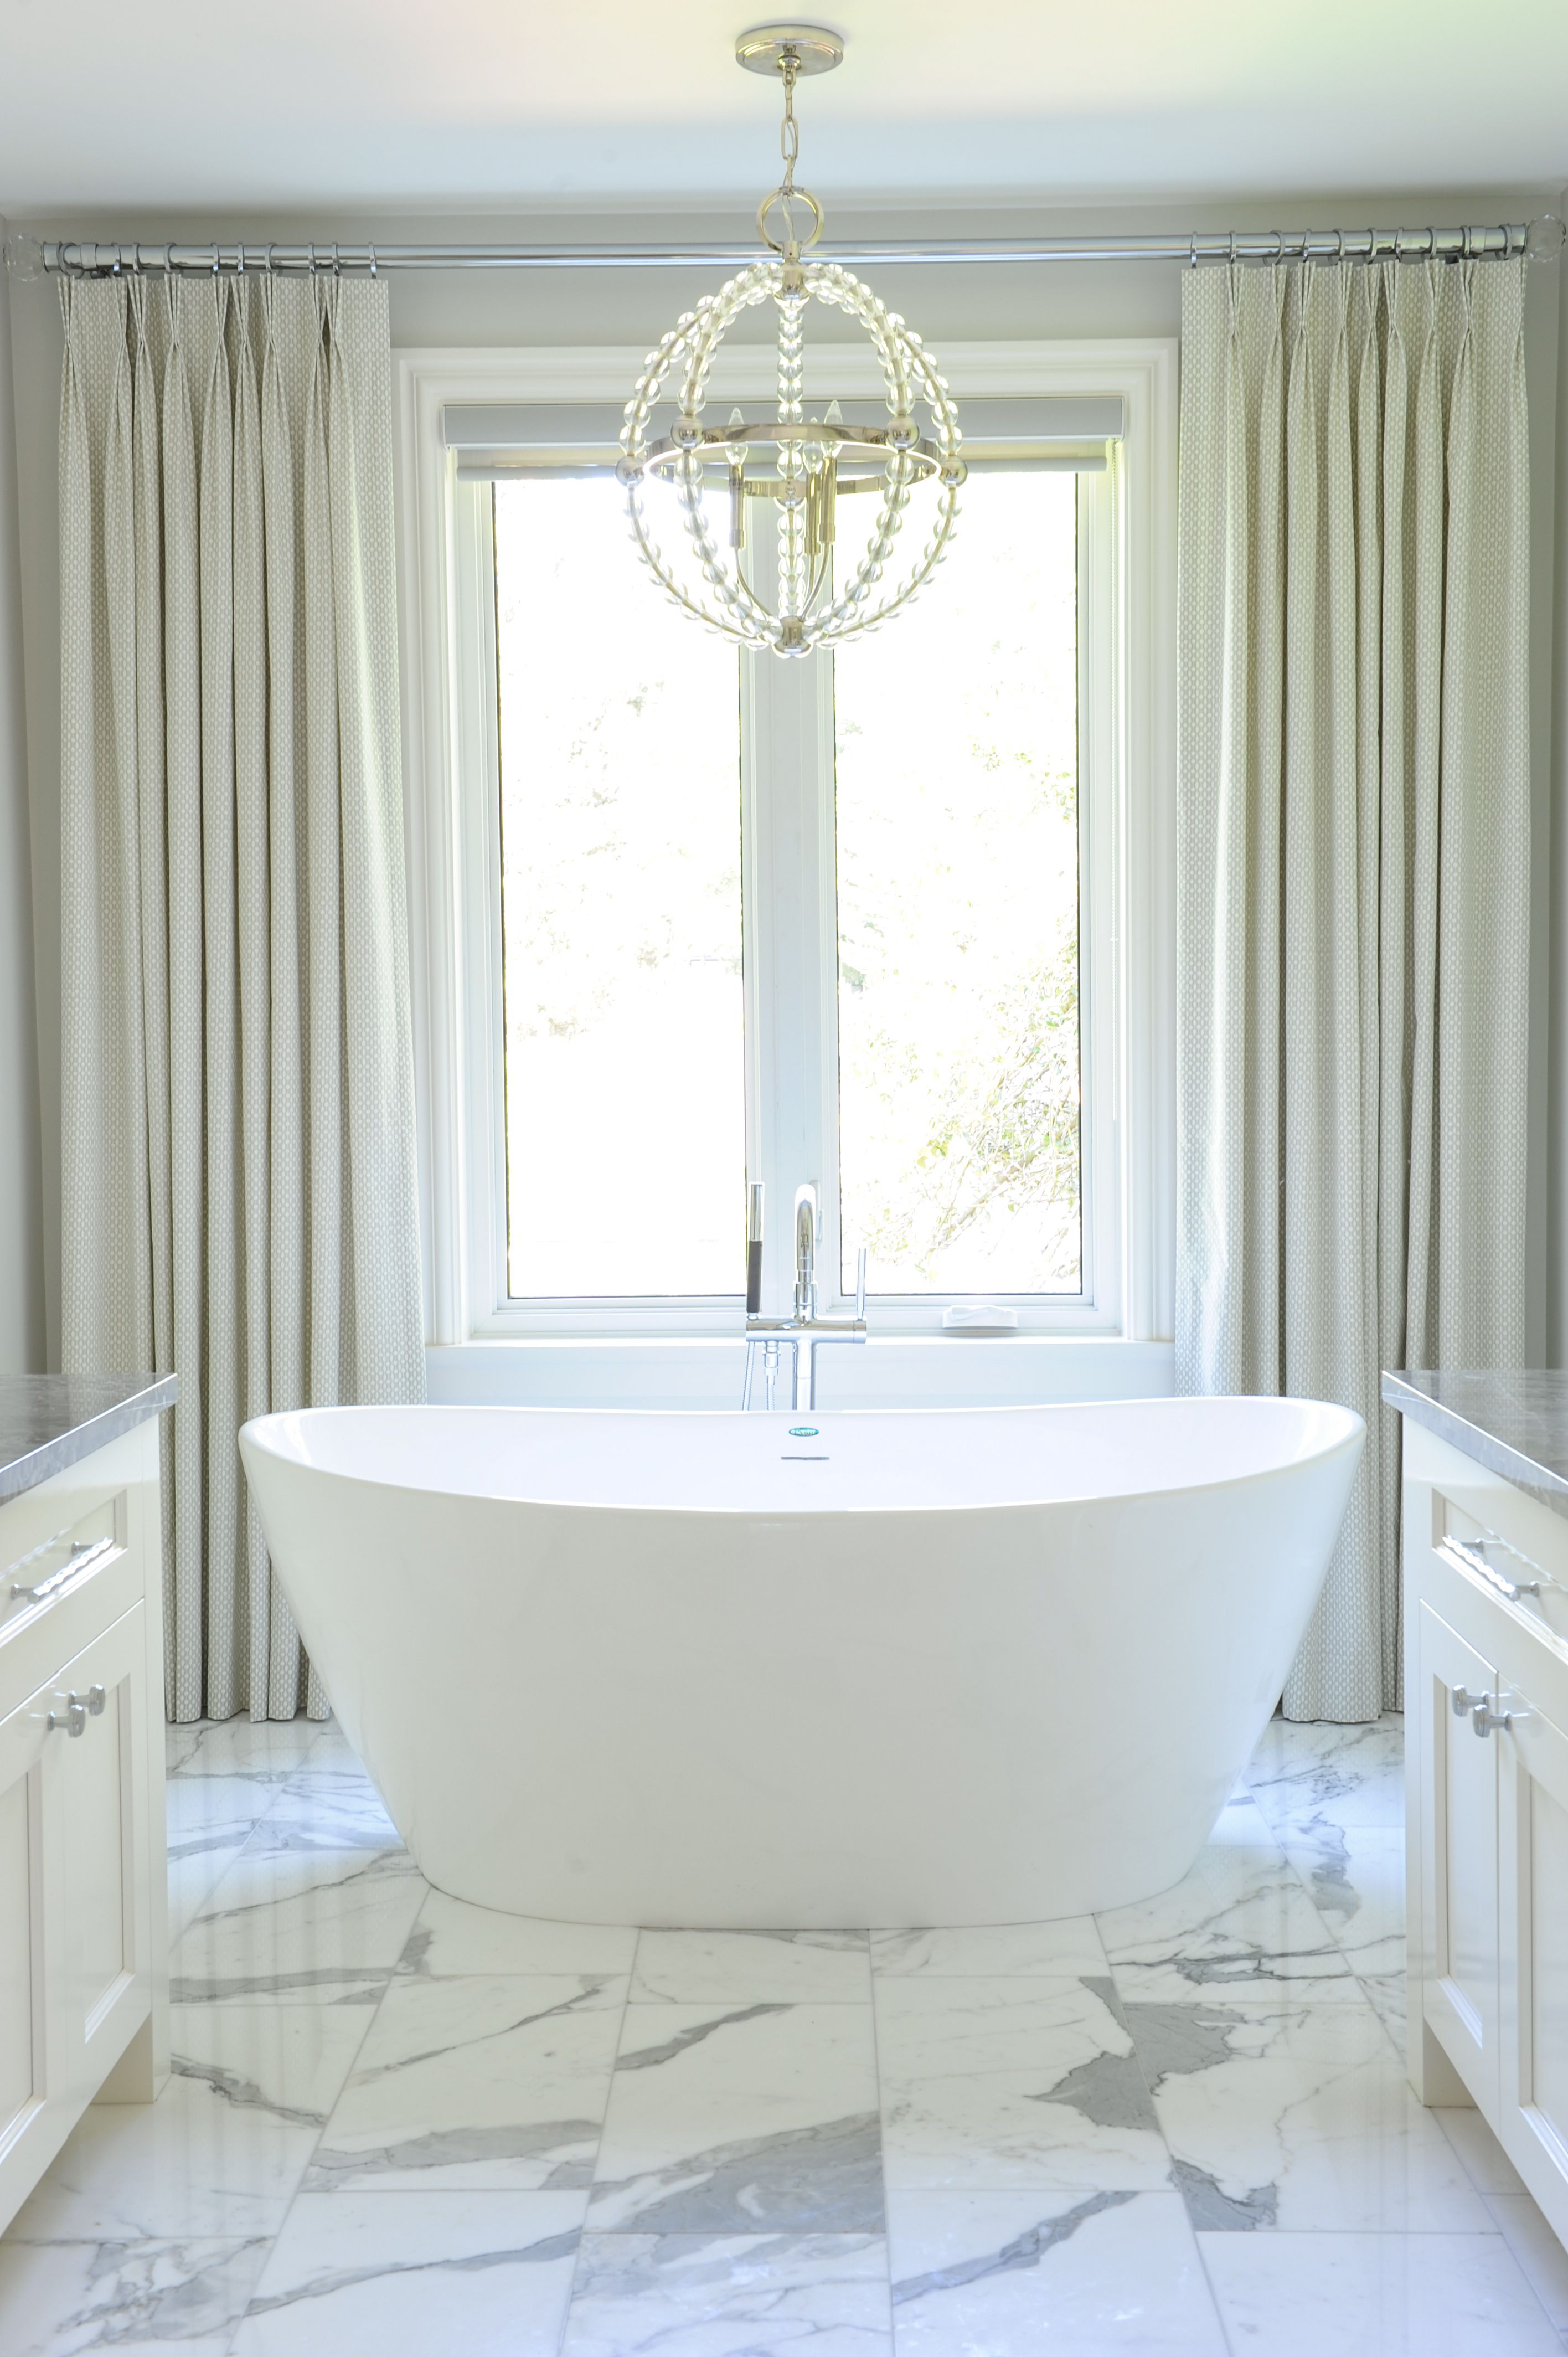 Master Ensuite Designed By Enviable Designs Less Contemporary Tub - Master ensuite bathroom designs